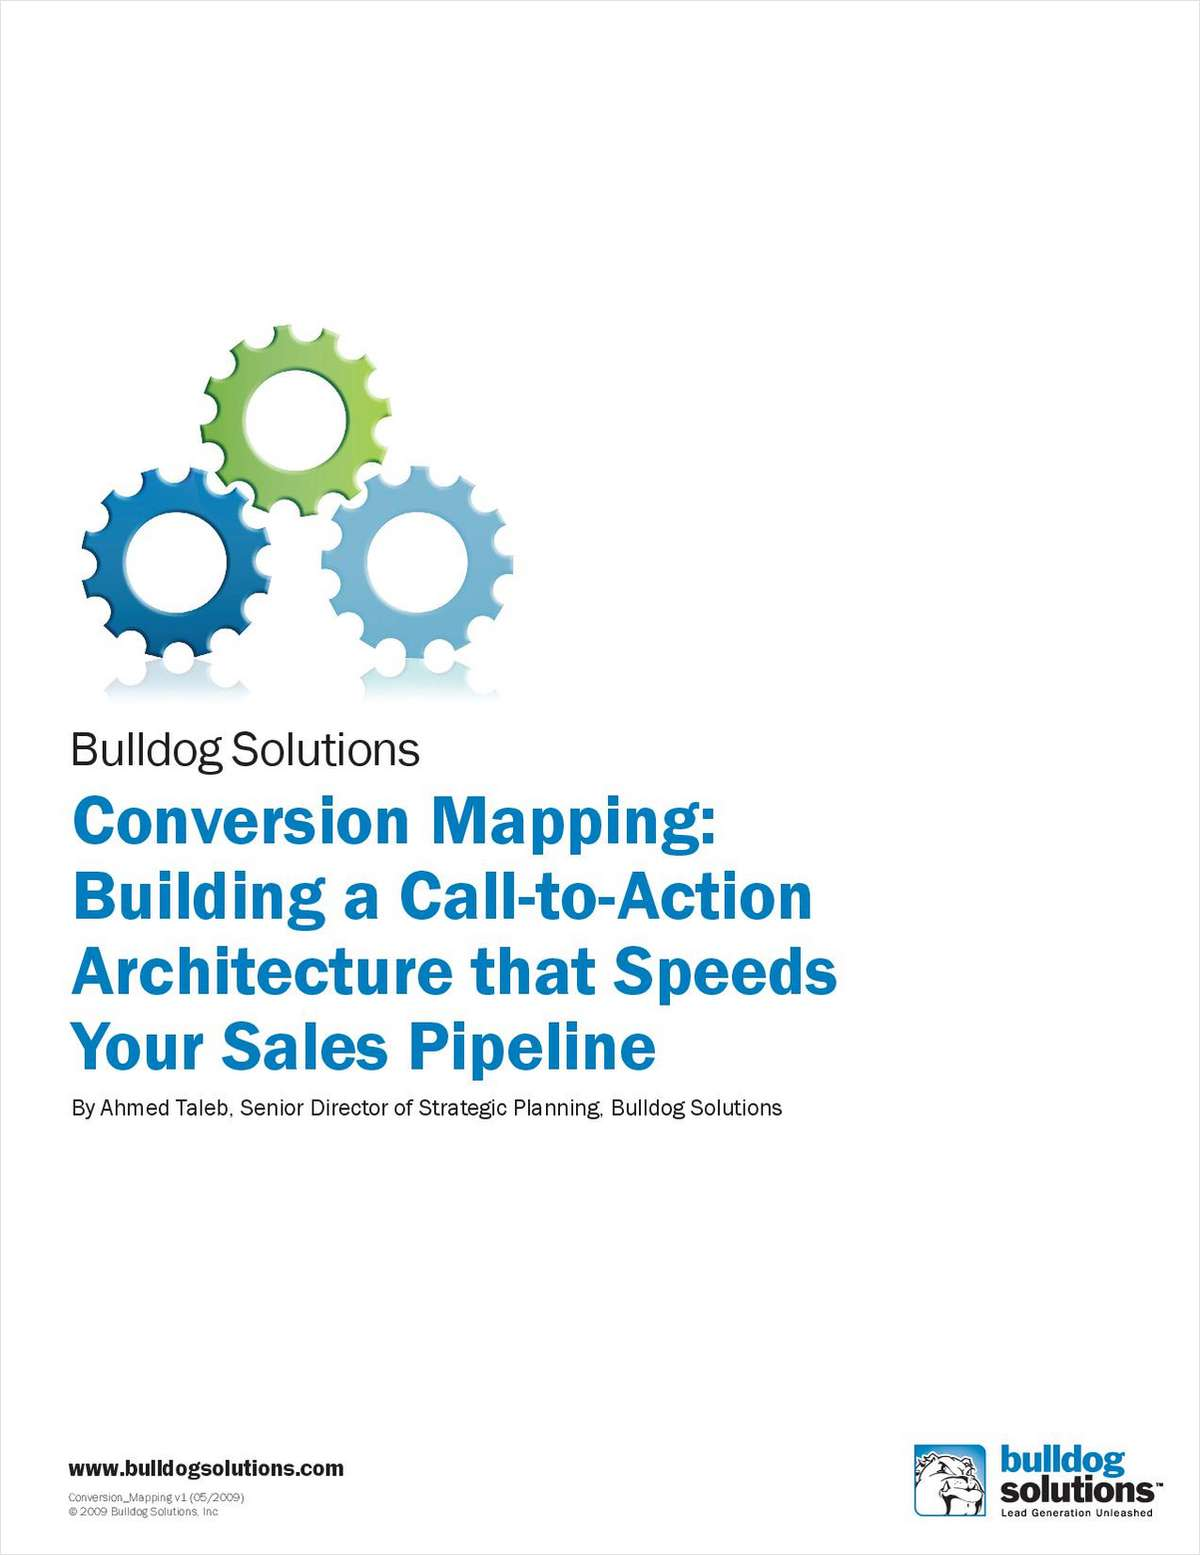 Conversion Mapping: Building a Call-to-Action Architecture that Speeds Your Sales Pipeline